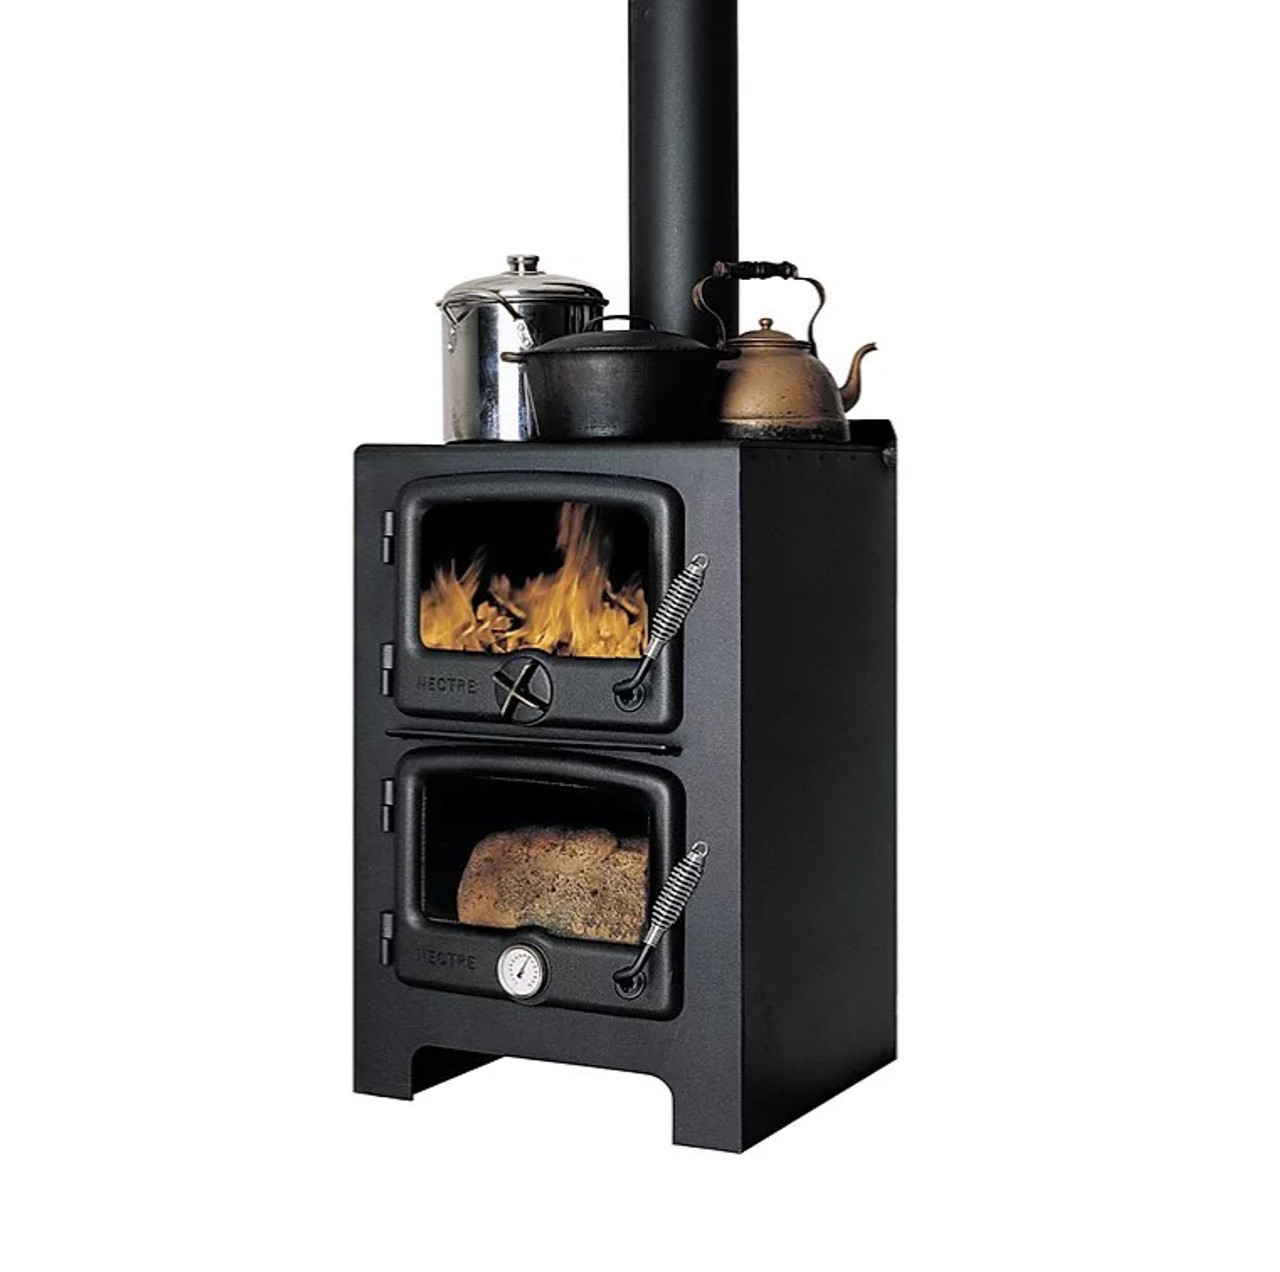 Nectre N350 Wood Cook Stove